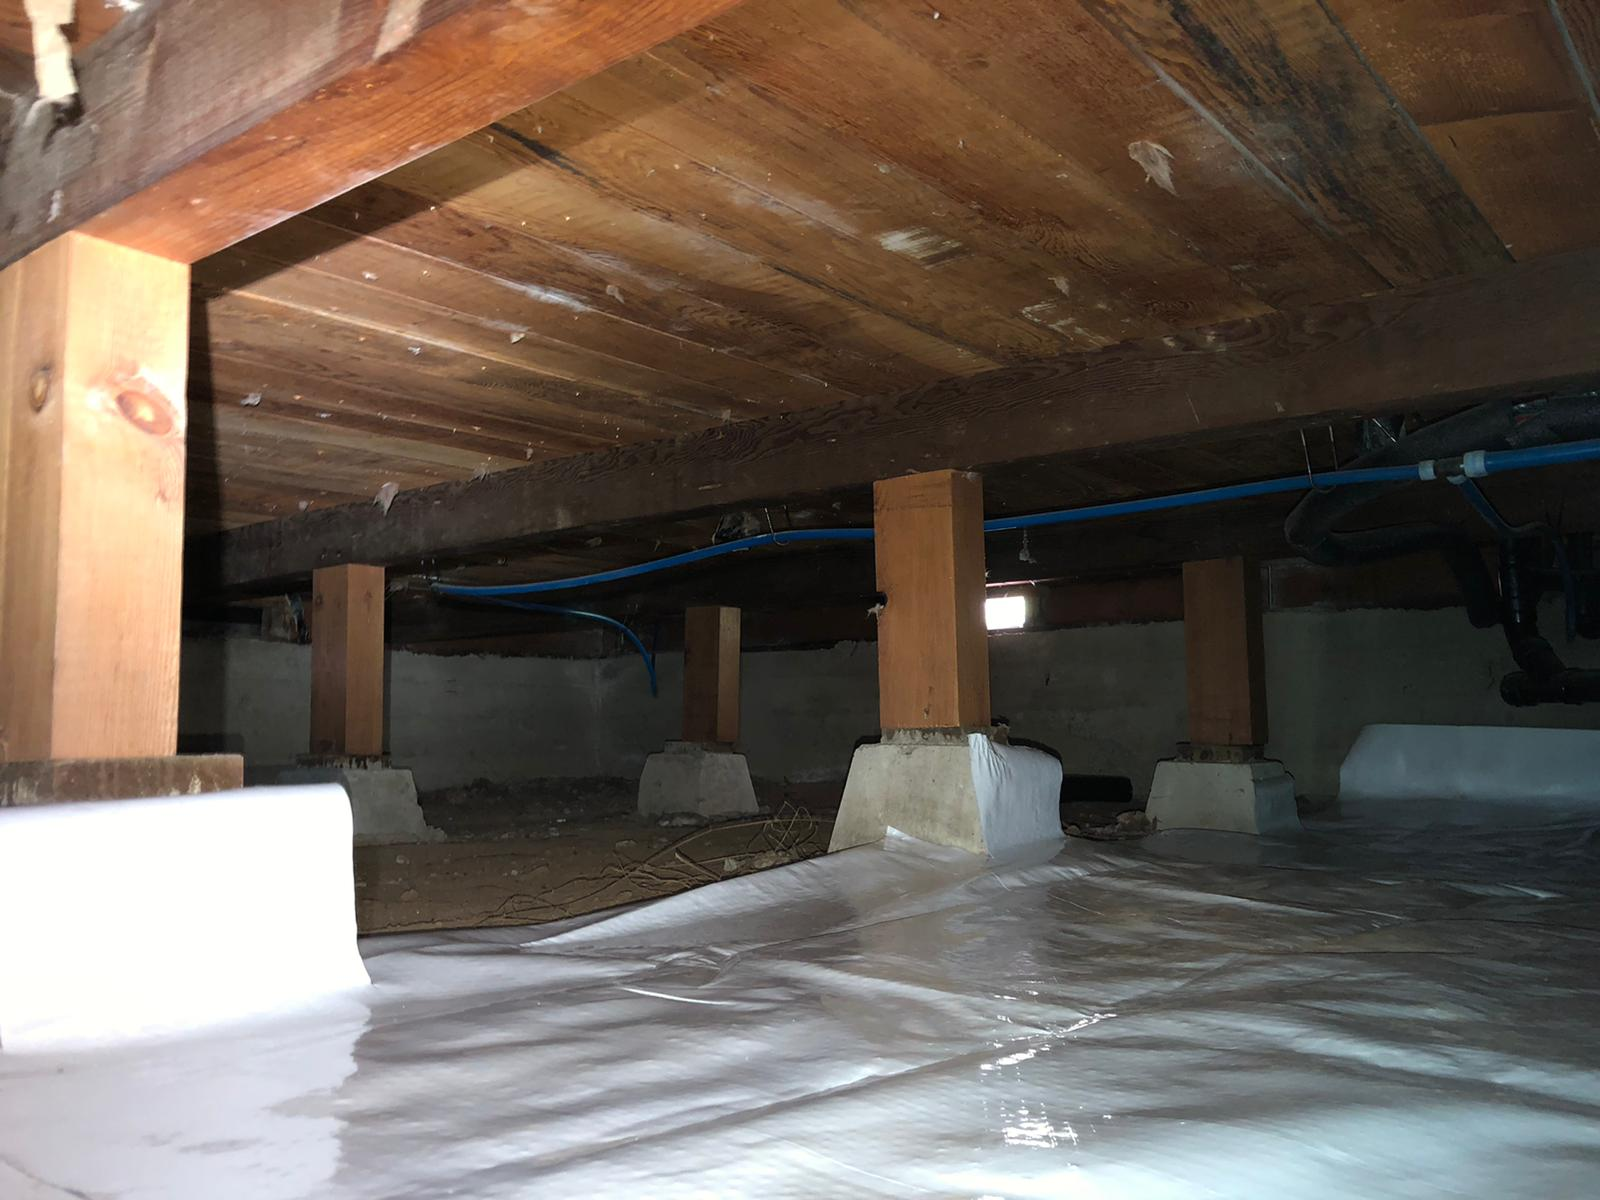 Crawlspace vapor barrier in Walnut Creek CA | Attic Insulation Service Fiberglass Insulation